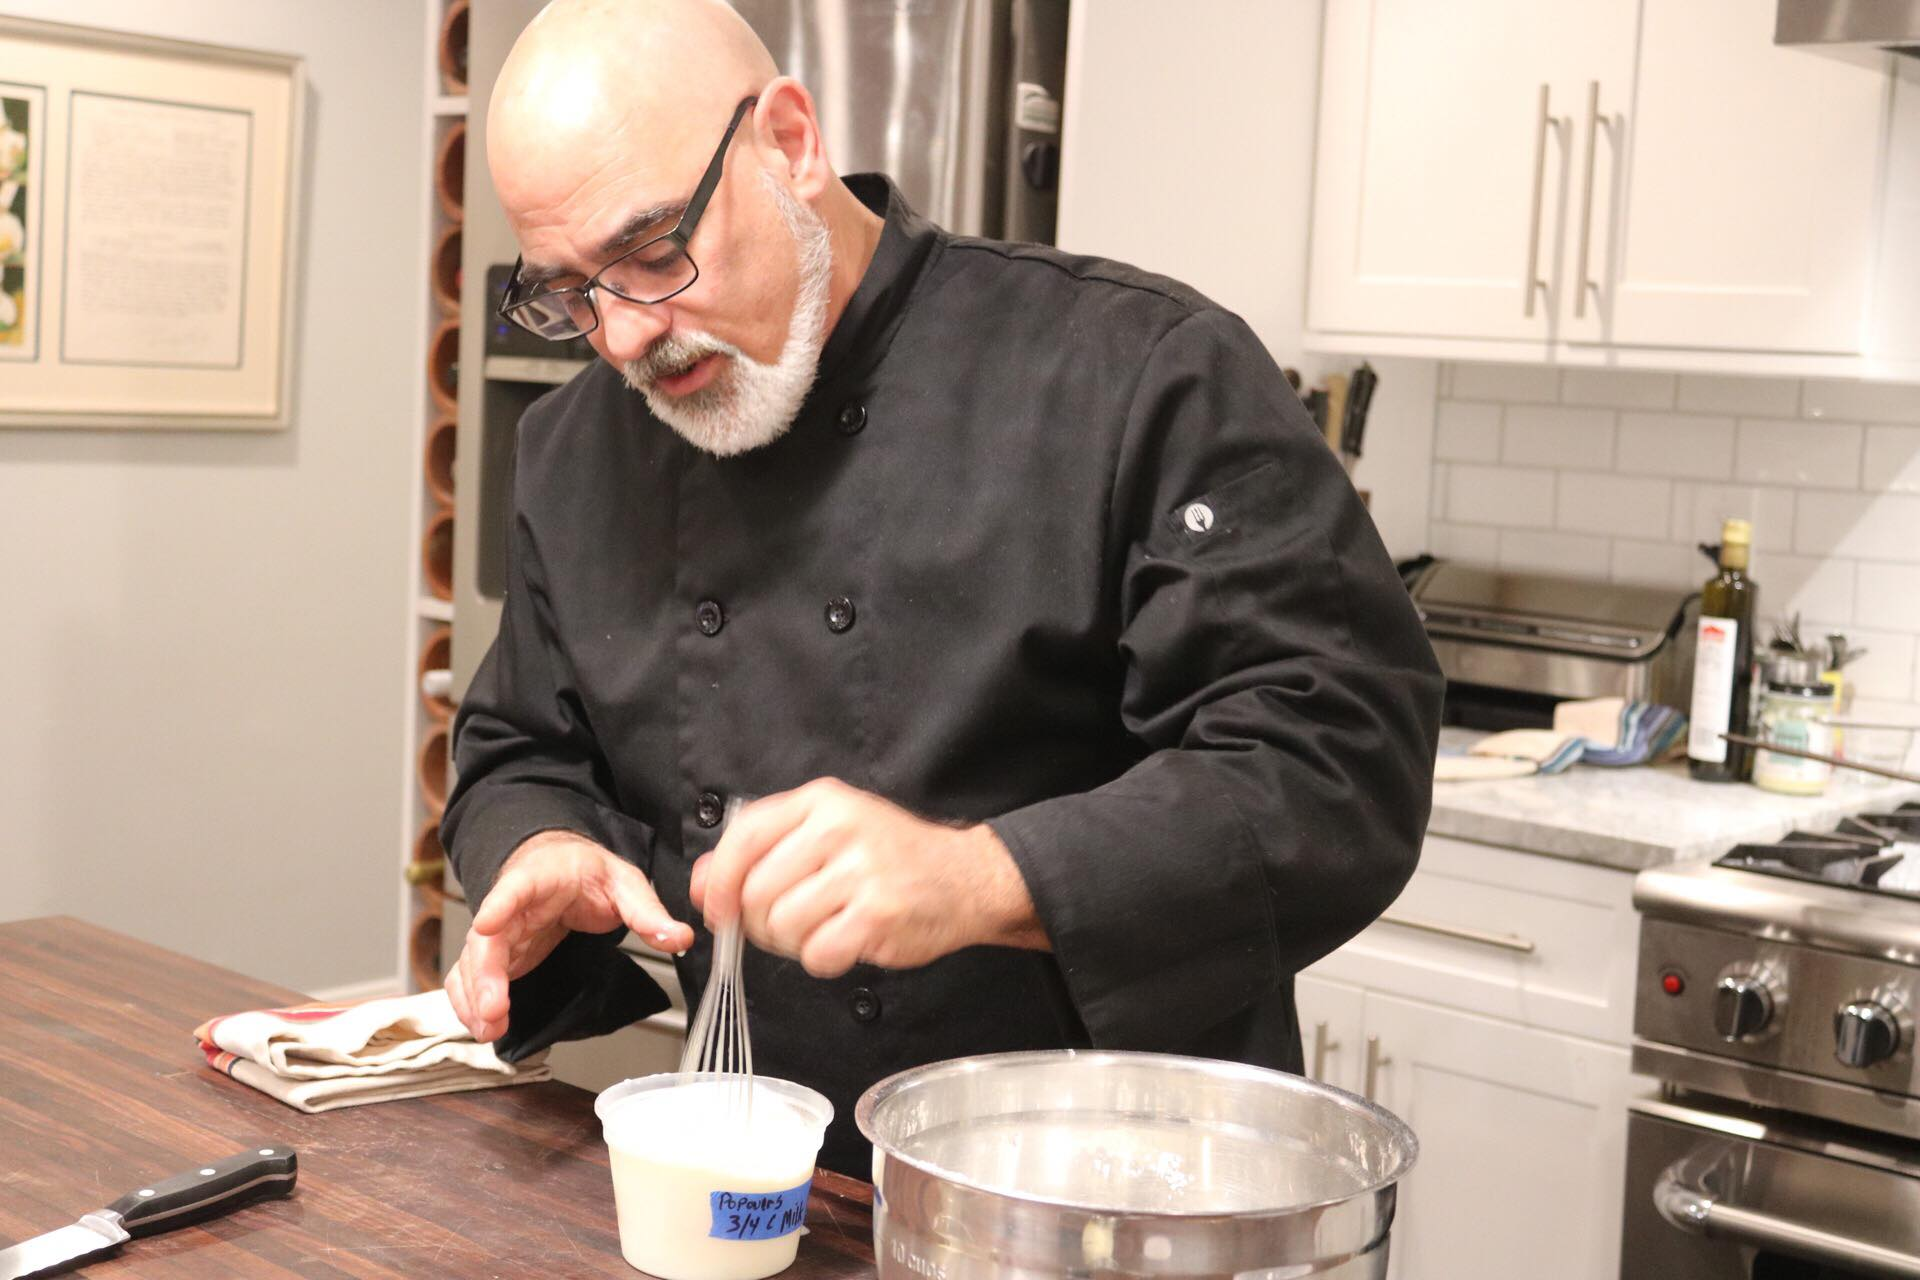 home cook eric whisk.jpg